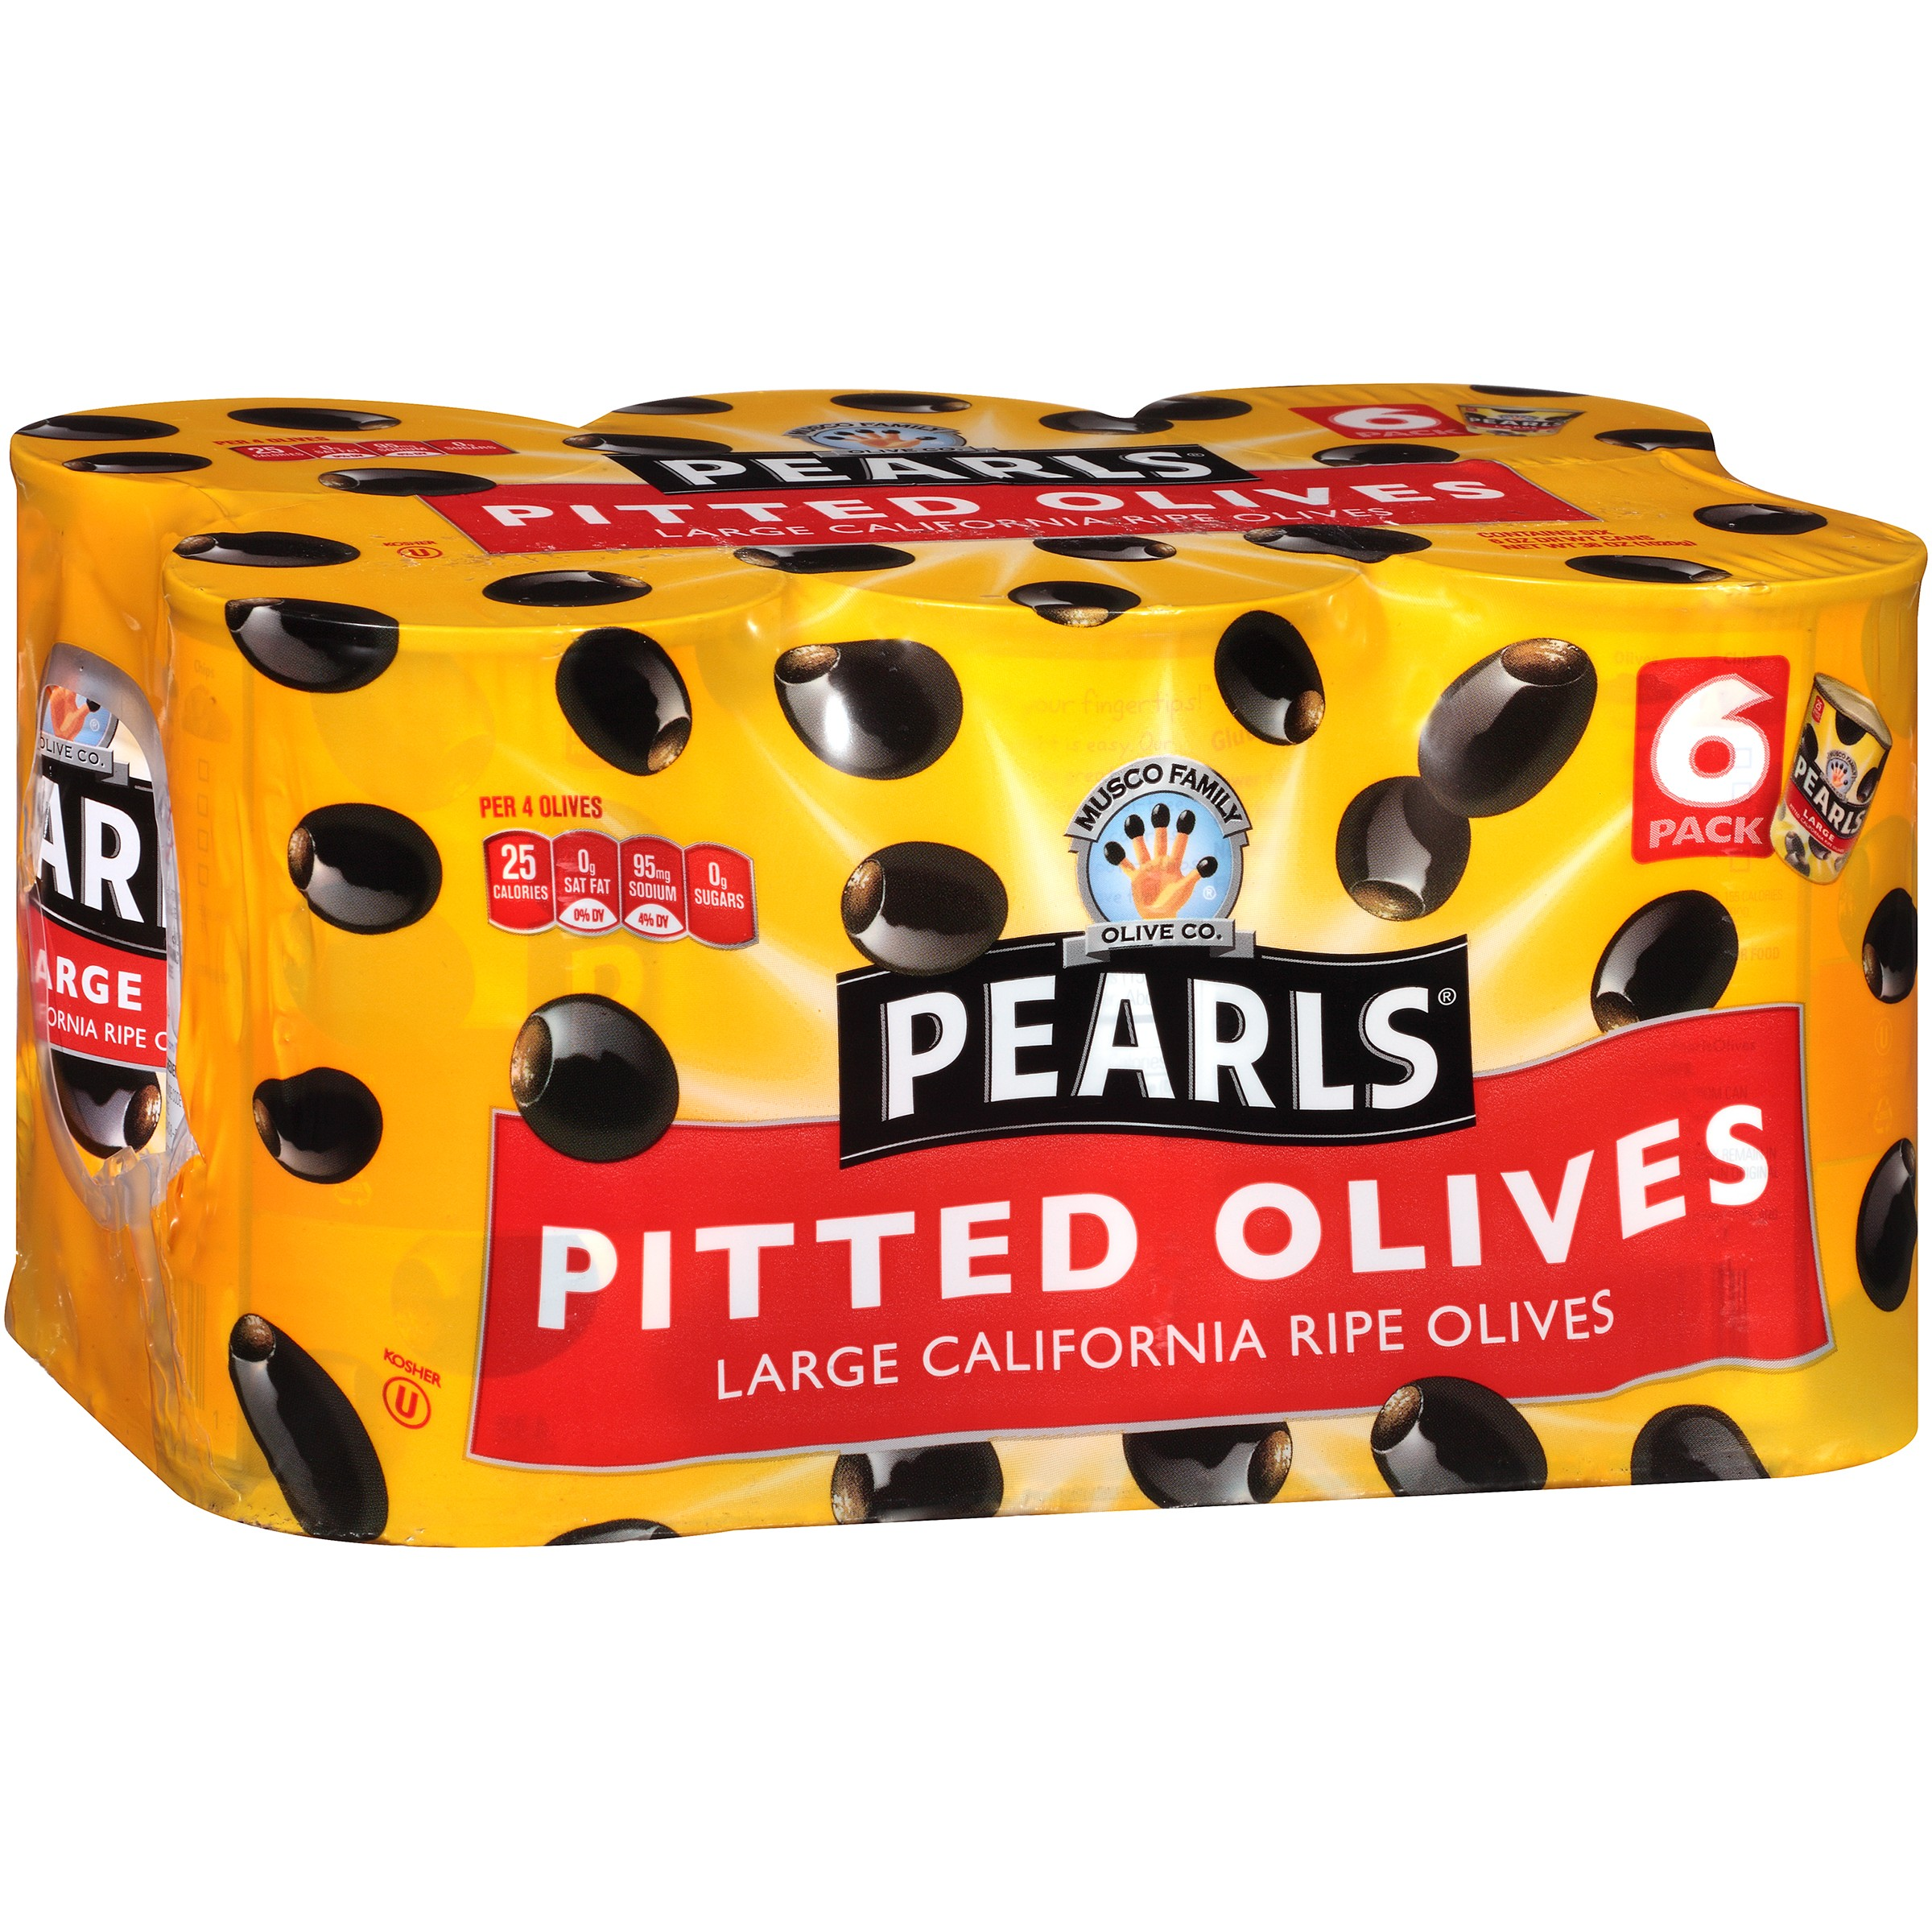 Pearls® Large Pitted California Ripe Olives 6-6 oz Cans